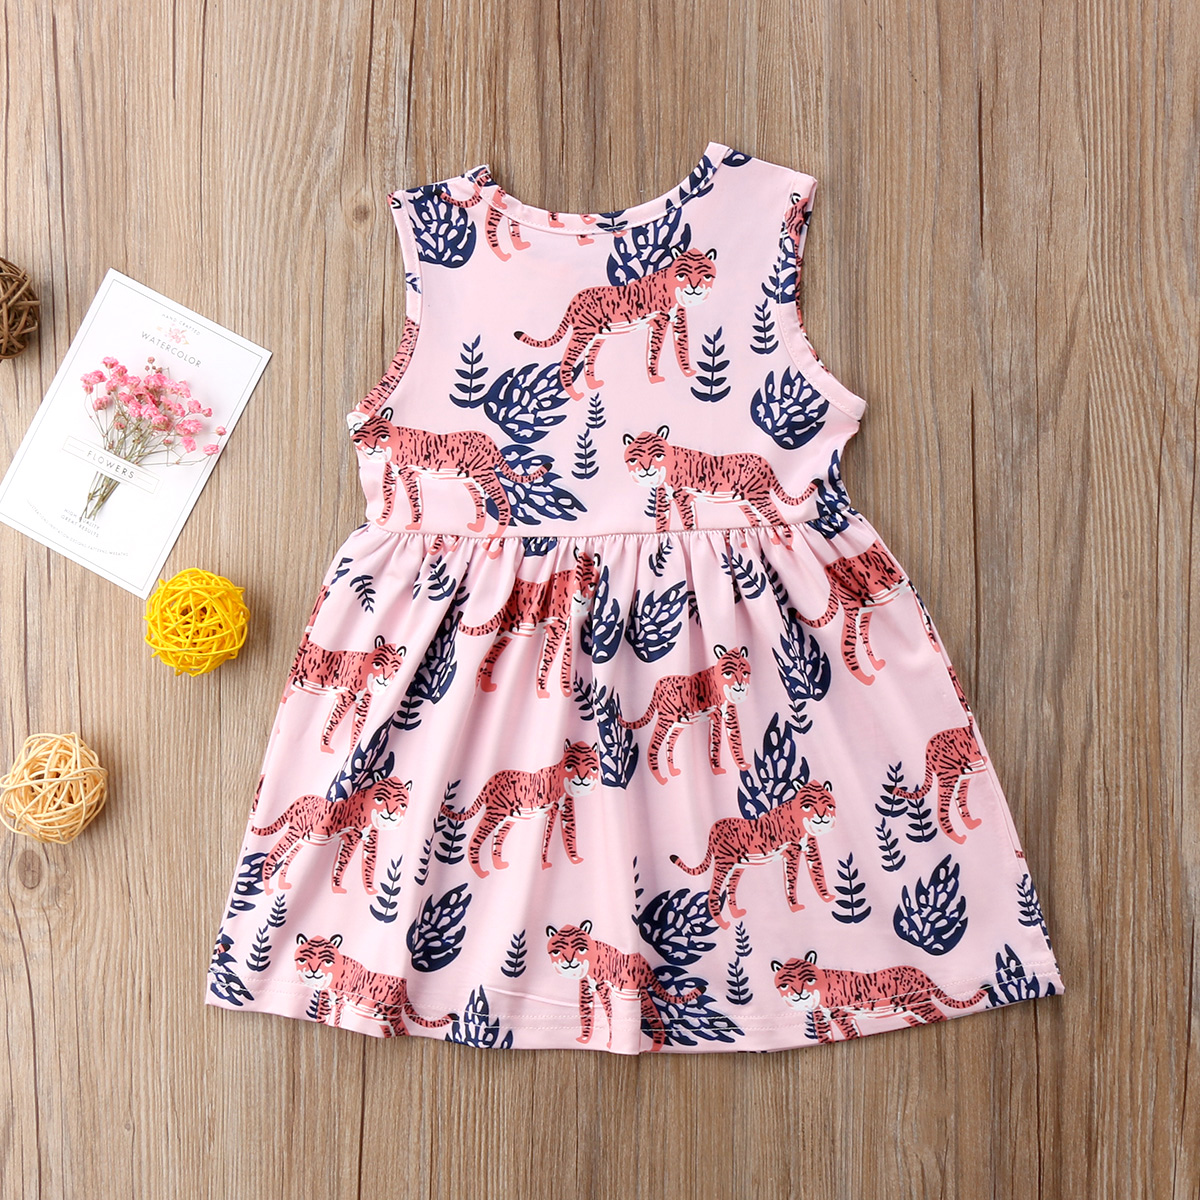 ad9d01b200 Cute Kids Baby Girls Princess Dress Tiger Print 2018 Summer New Sleeveless  Wedding Party Tulle Dress Tutu Sundress-in Dresses from Mother   Kids on ...